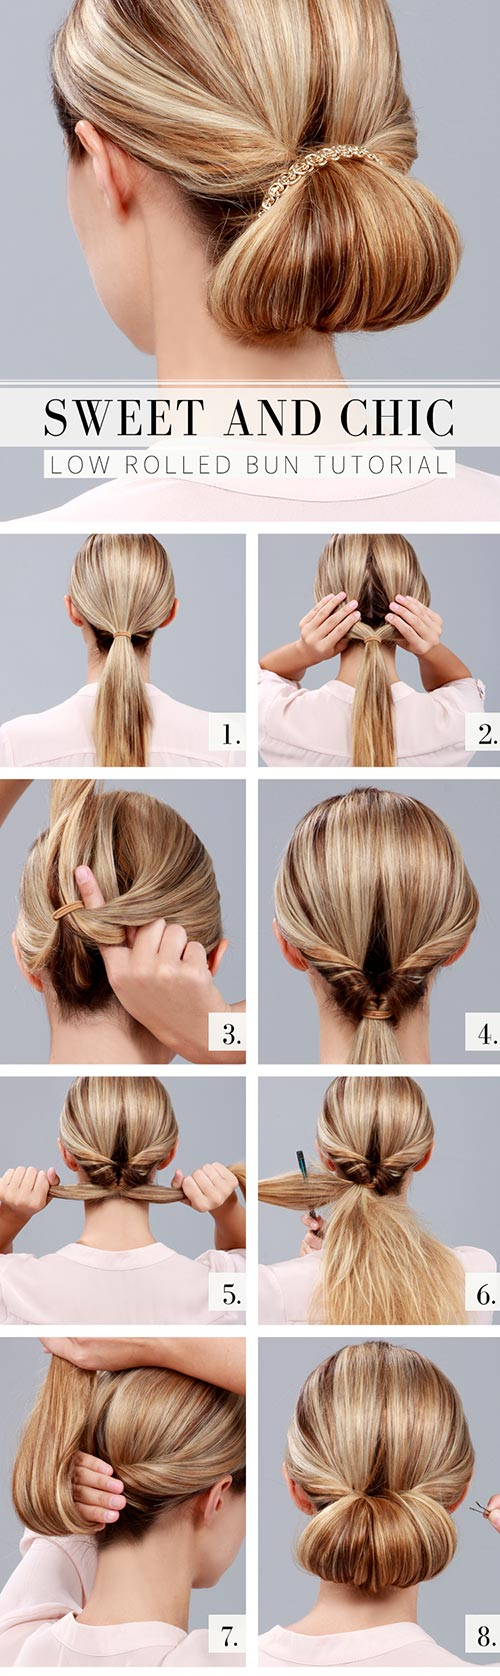 Simple Hairstyle Tutorials for Every Occasion